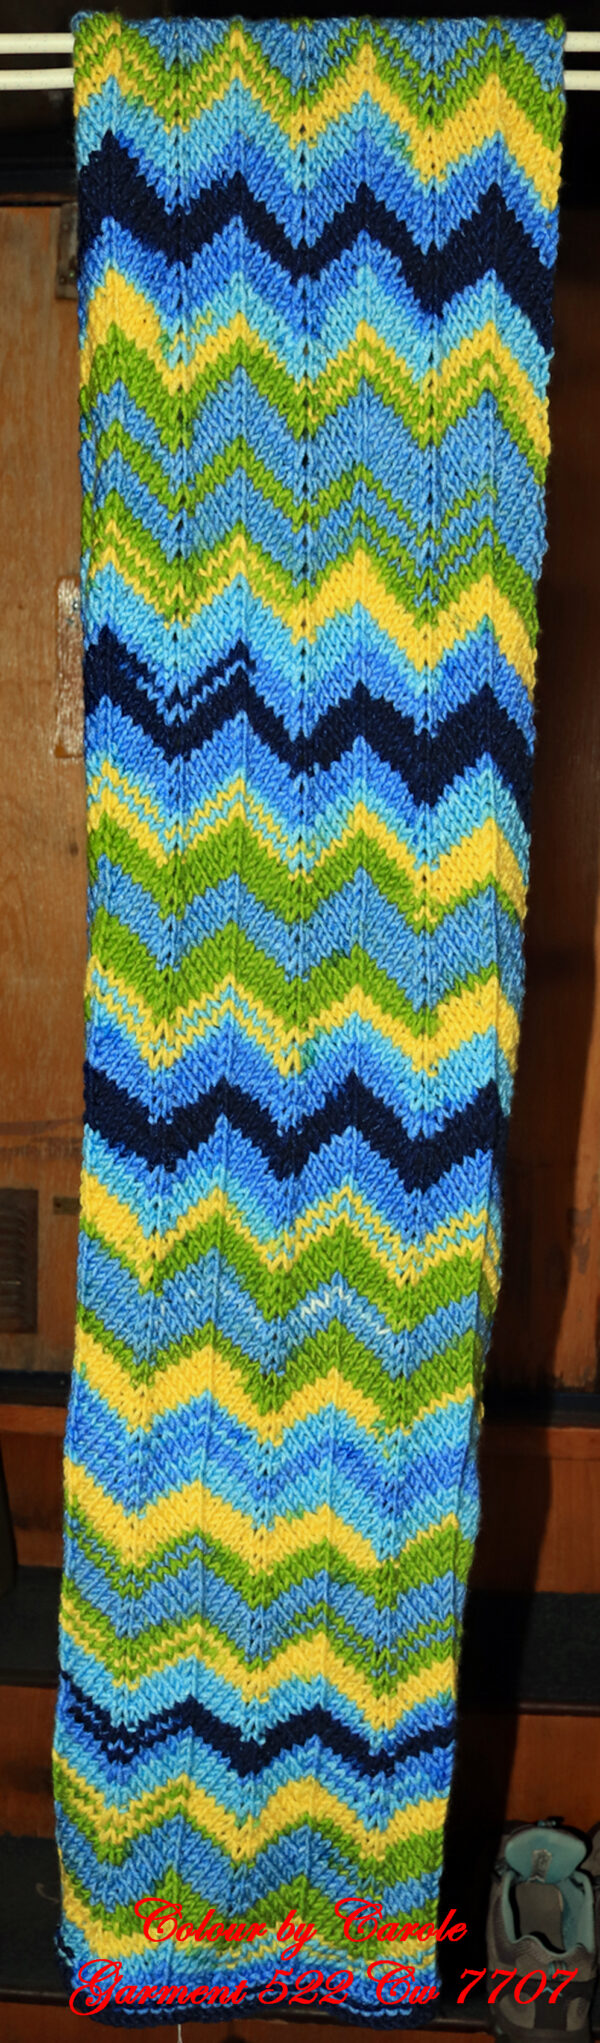 """Blue, Yellow and green chunky scarf. A long and warm bright scarf designed and hand knitted by Carole Wareing of Colin and Carole's Creations and The Wool Boat. This is an adult sized garment, knitted from a chunky yarn, with a chevron pattern in shades of Blue, Yellow and Green. It is ideal for keeping warm on a windy winter's day whilst doing some gardening, locking, bicycling, standing markets, fishing, watching outdoor sports and events, or walking and rambling. The garment is approx 72 inch long and 11 inches wide. The scarf is for sale for £25 from the Wool Boat The warmer is knitted from J C Bretts """"Party Time"""" chunky knitting acrylic yarn Shade PT 2 which has bold Blue, Yellow and green shades in it. The yarn knits to most chunky knitting patterns and is available from the Wool Boat of which we have a range of 7 other shades at £3.50 per 100 gram ball. Posted out would be for £30 including delivery to a uk address, Copyright Colin Wareing Garment 522 Cw 7707"""